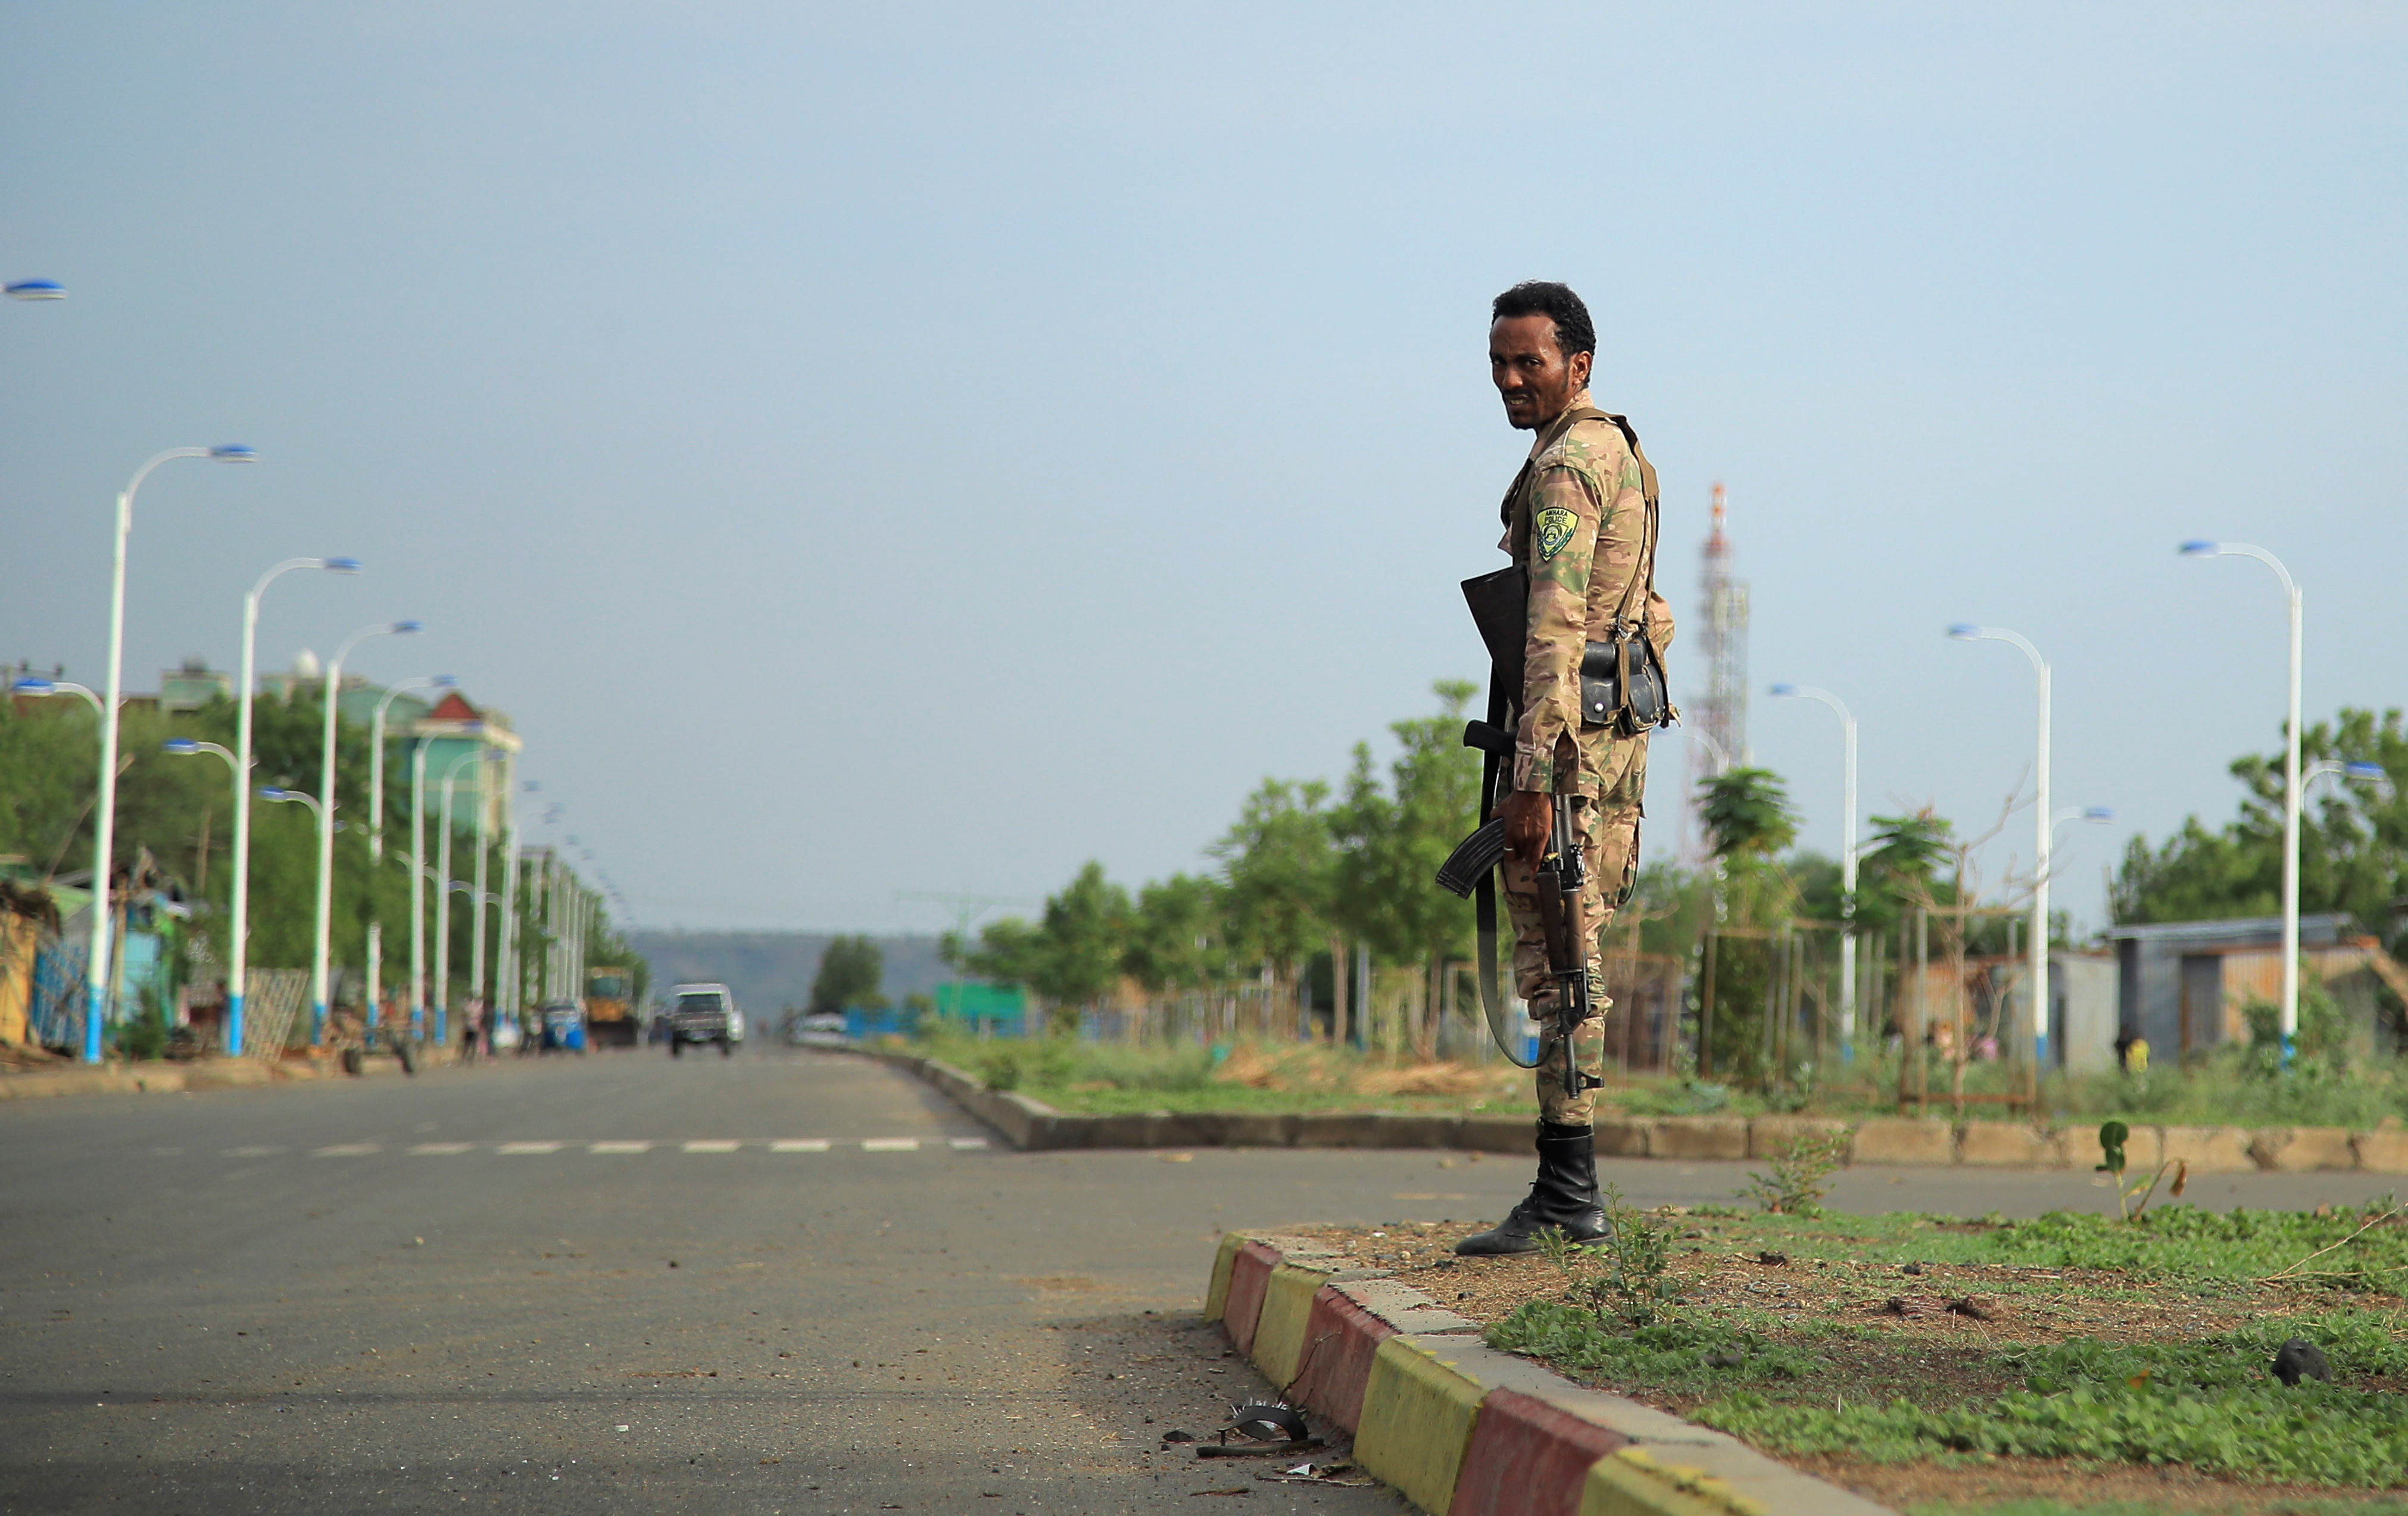 A member of Amhara Special Forces stands guard along a street in Humera town, Ethiopia July 1, 2021. REUTERS/Stringer